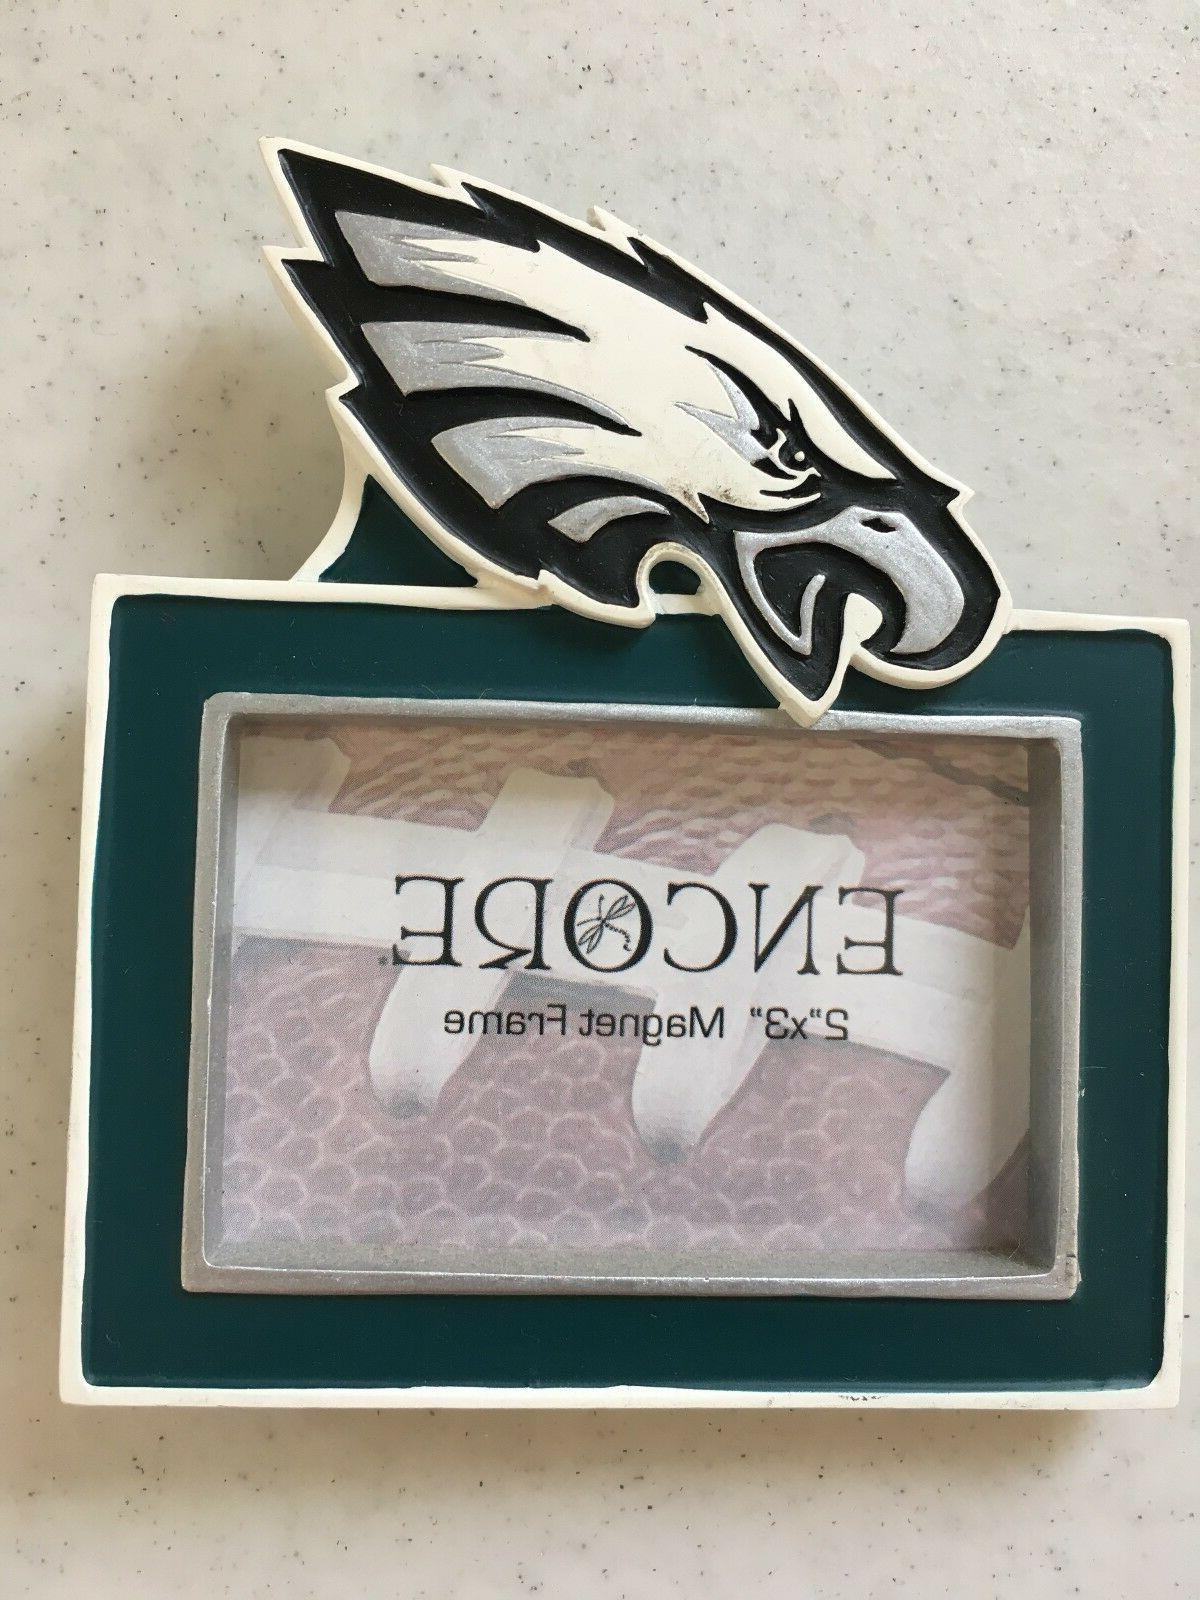 brand new philadelphia eagles small magnetic picture